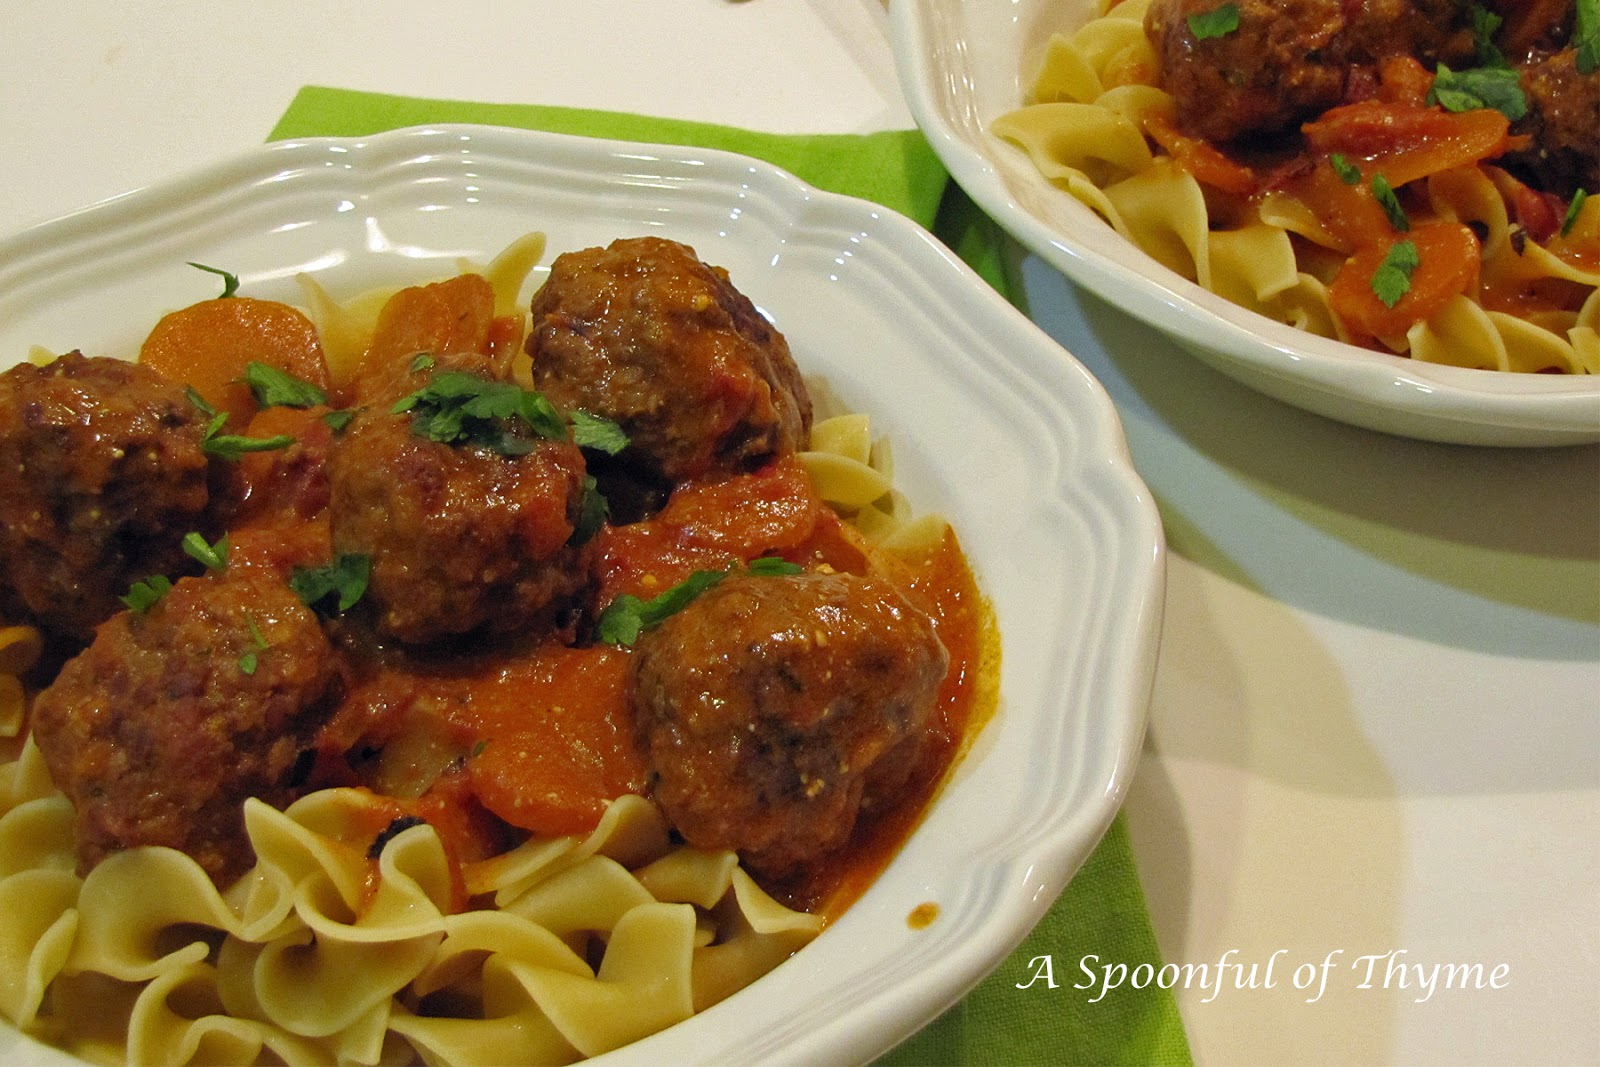 Hungarian Meatballs with Noodles